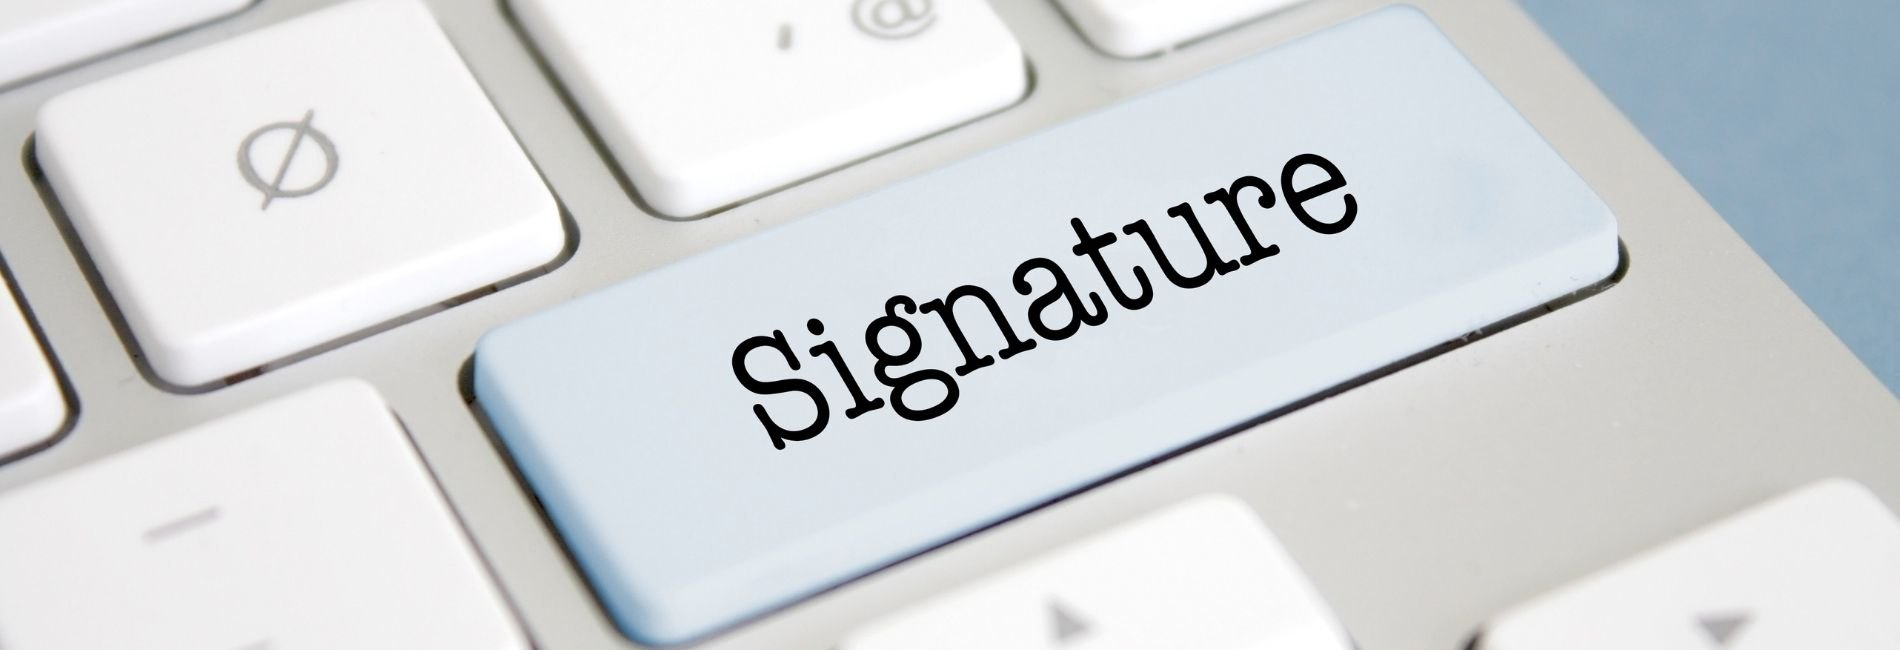 Signing Online. Is this Legal?